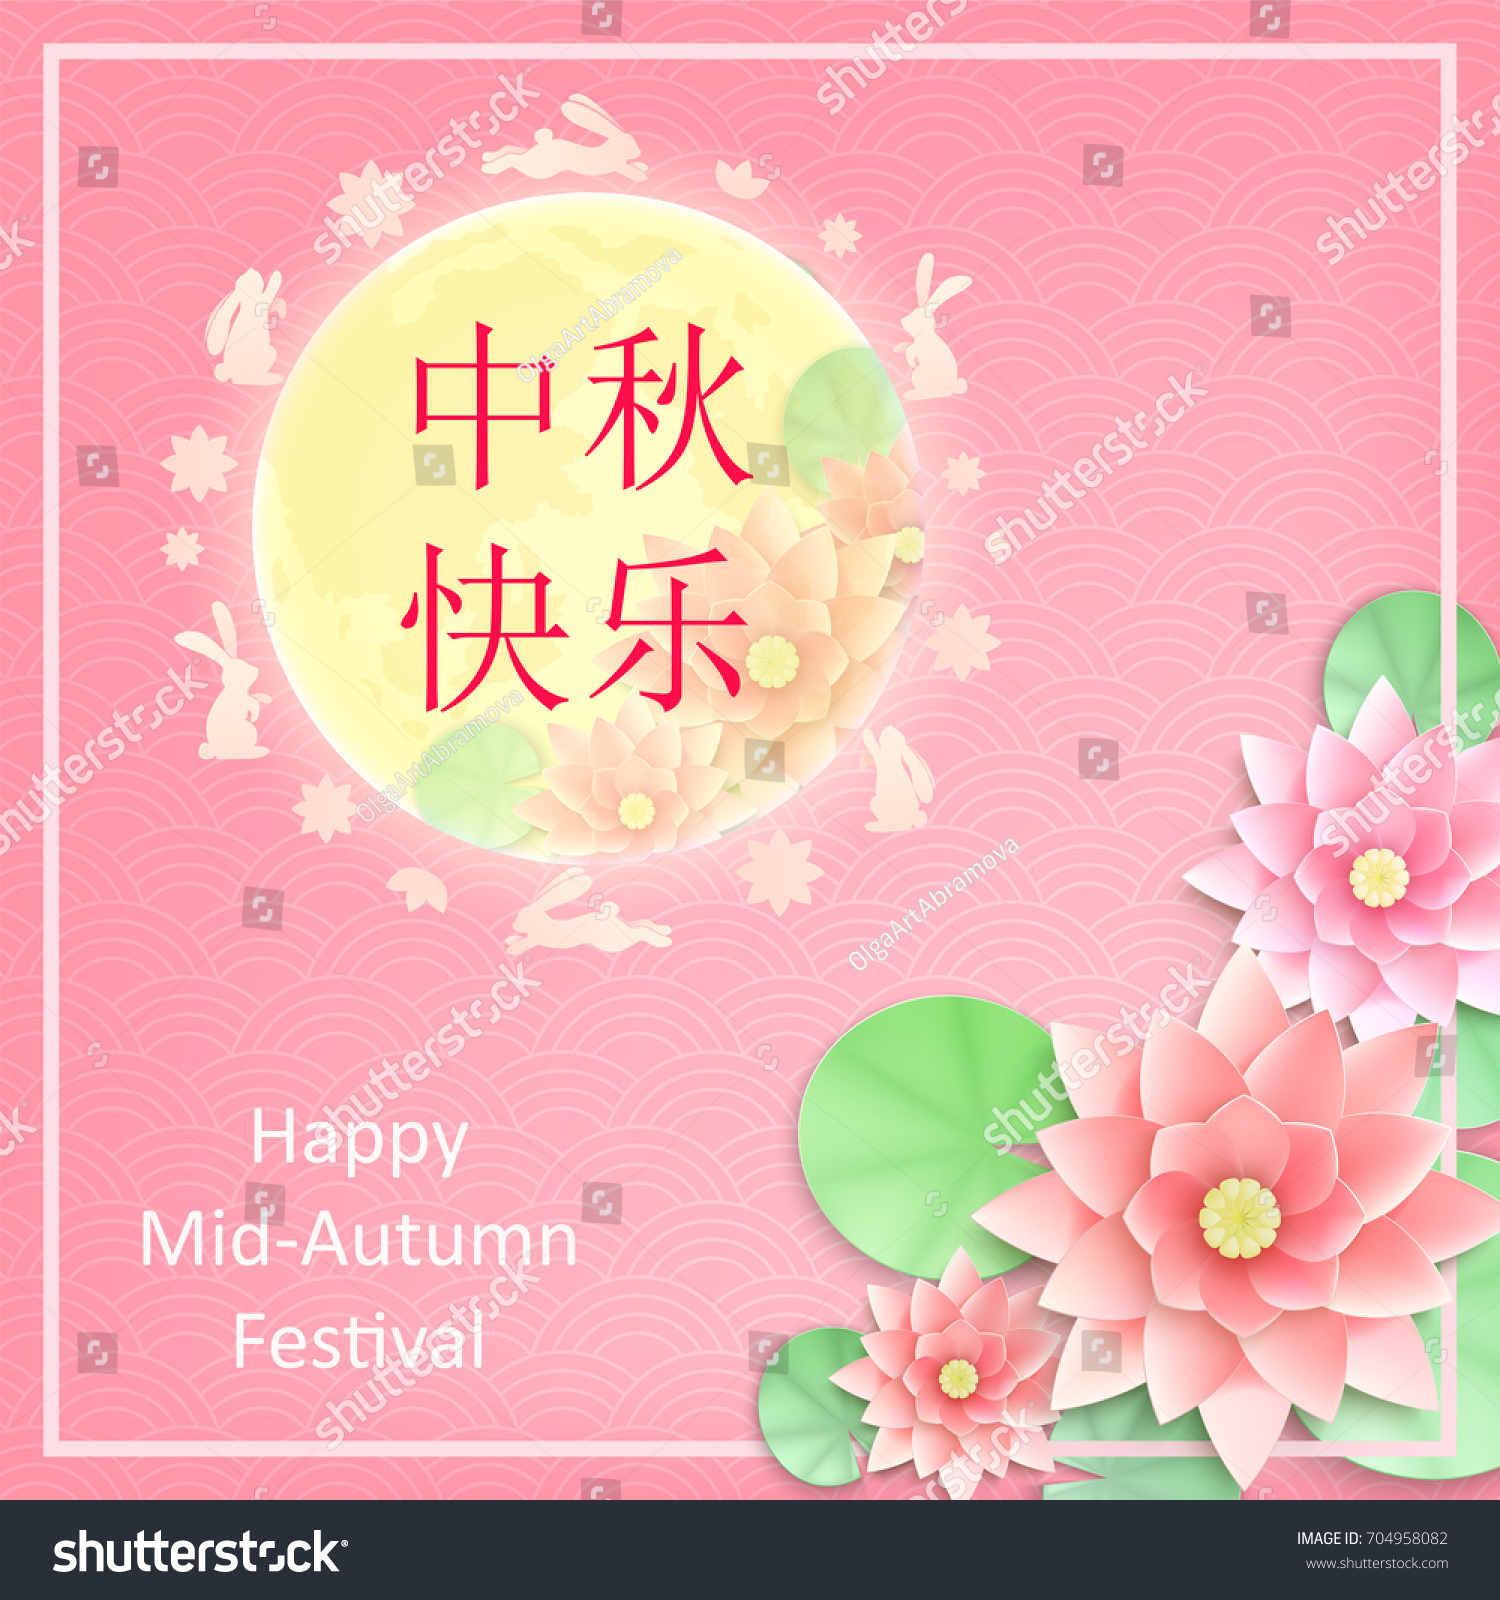 Chinese mid autumn festival greeting card stock vector 704958082 chinese mid autumn festival greeting card with moon rabbit and flowers chinese hieroglyphs are kristyandbryce Choice Image